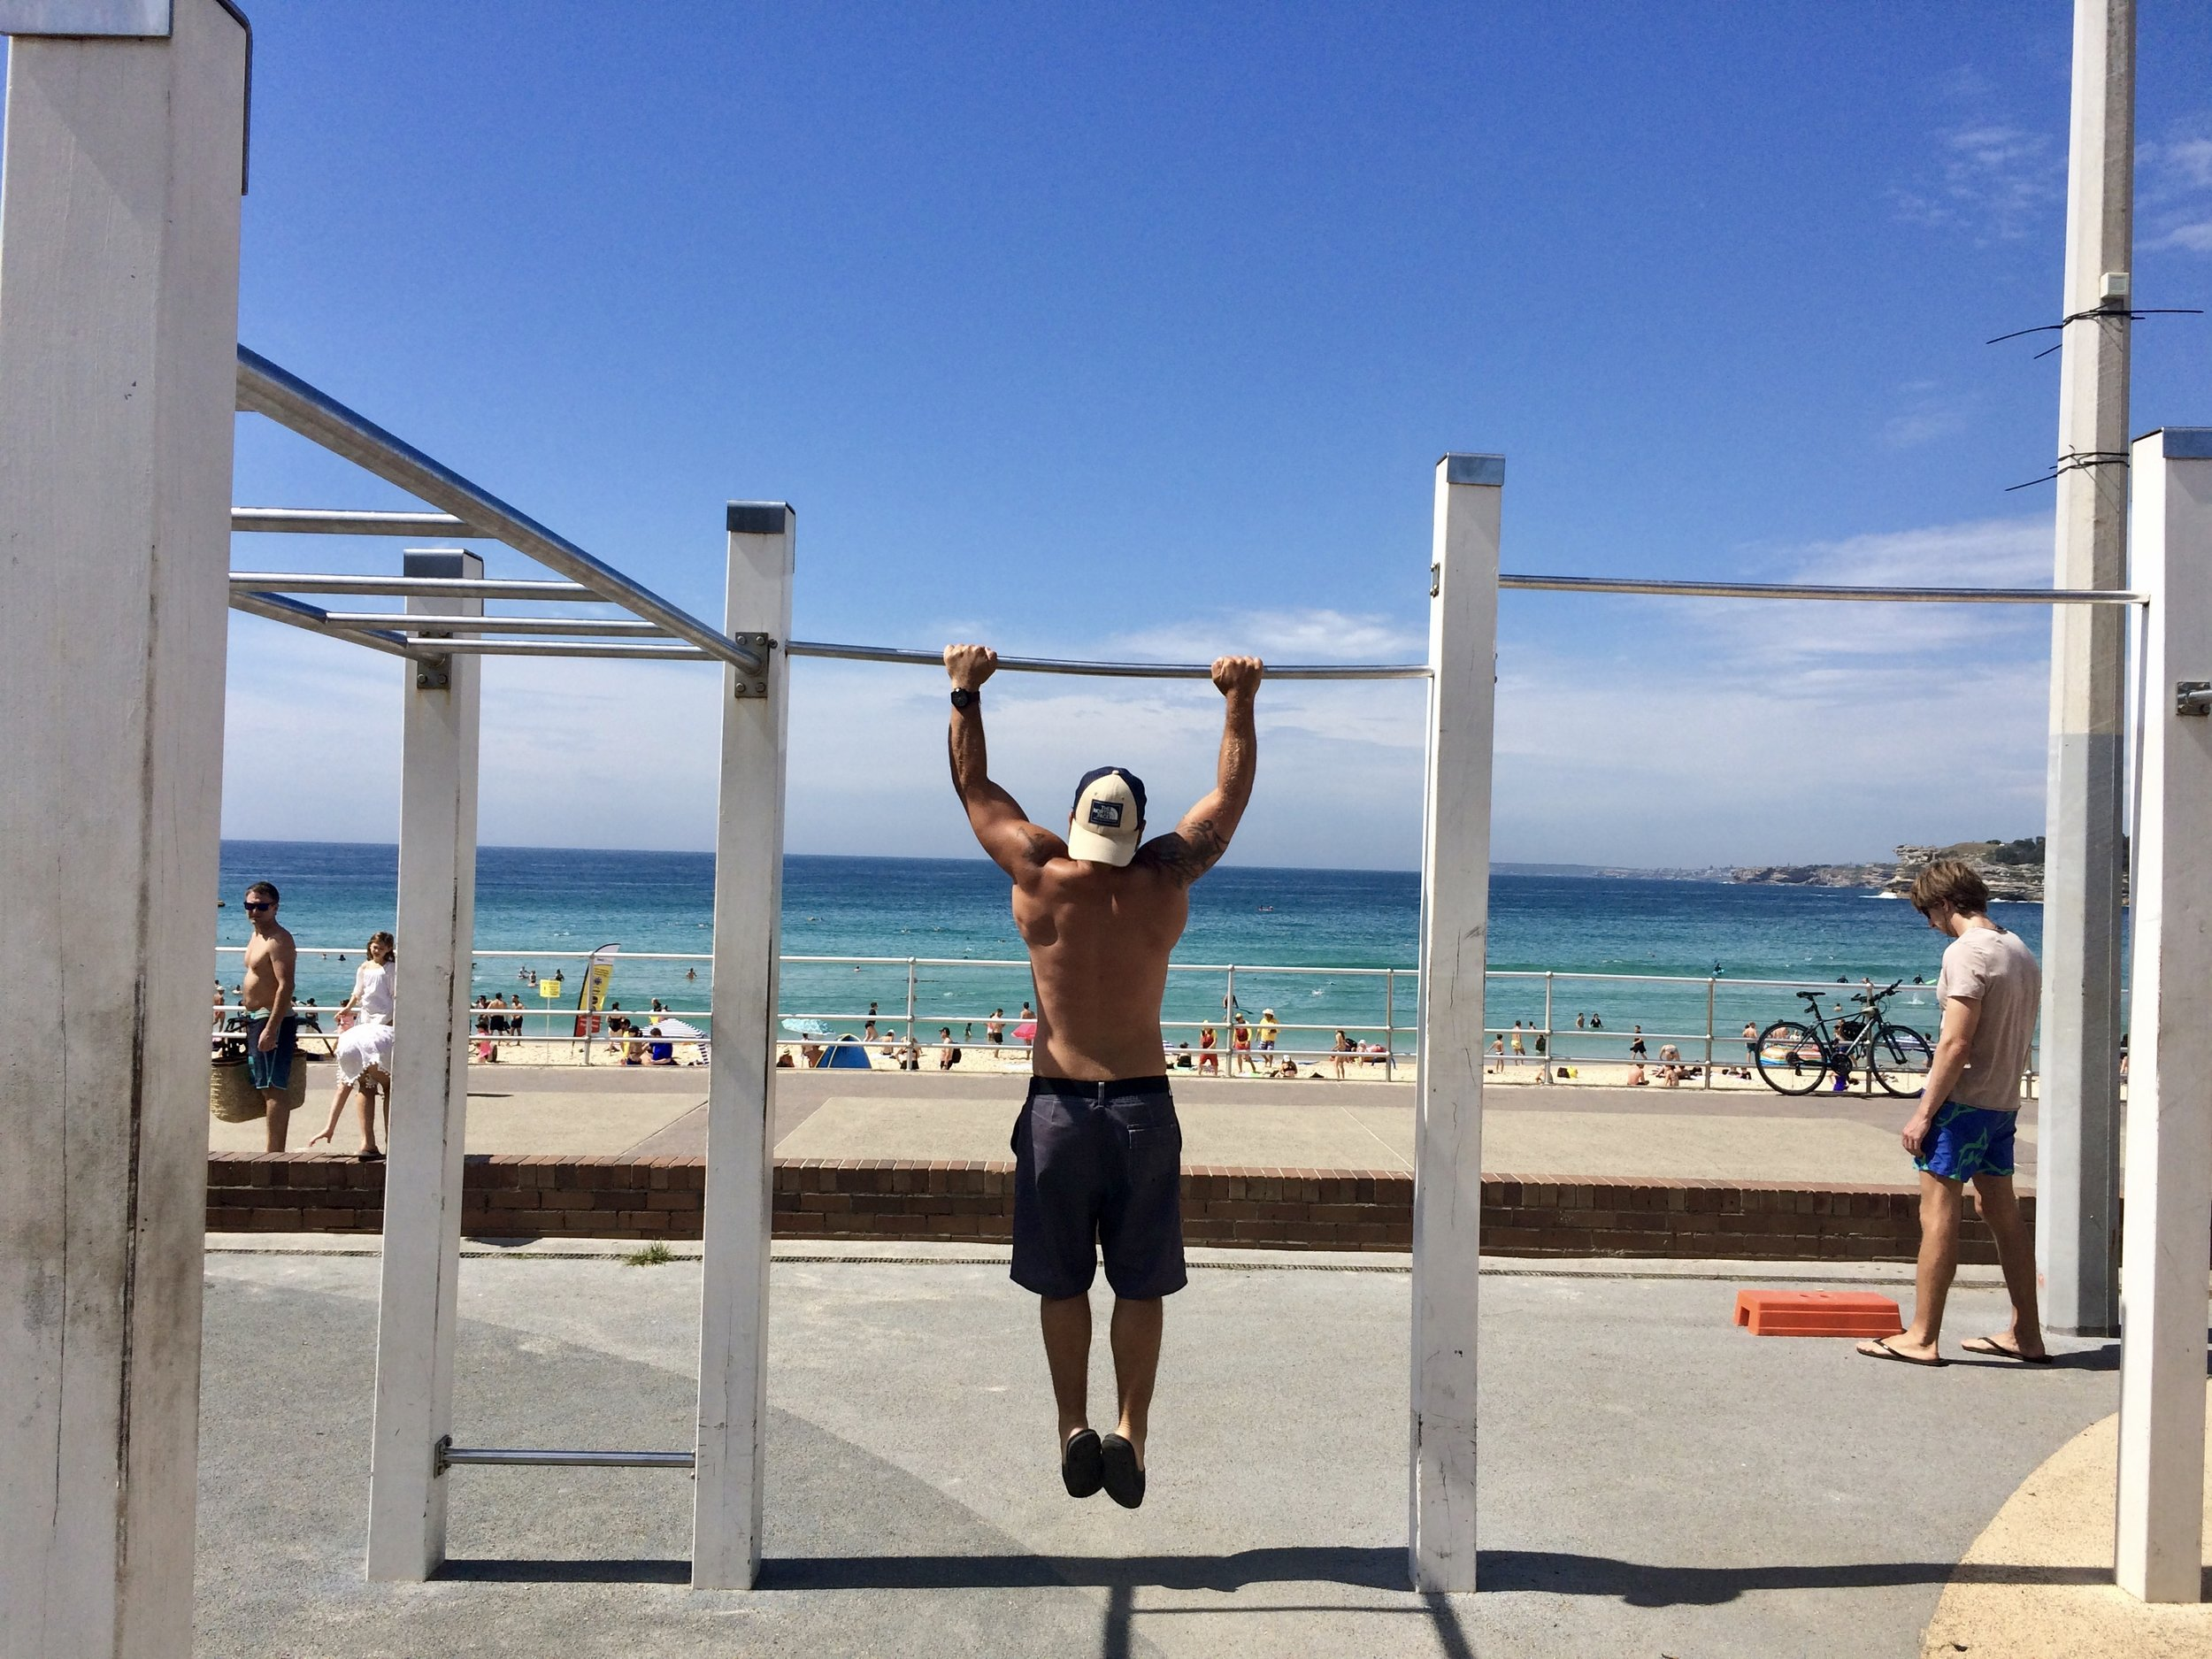 Did you even go to Bondi Beach if you didn't hit the beach gym? Couldn't resist...